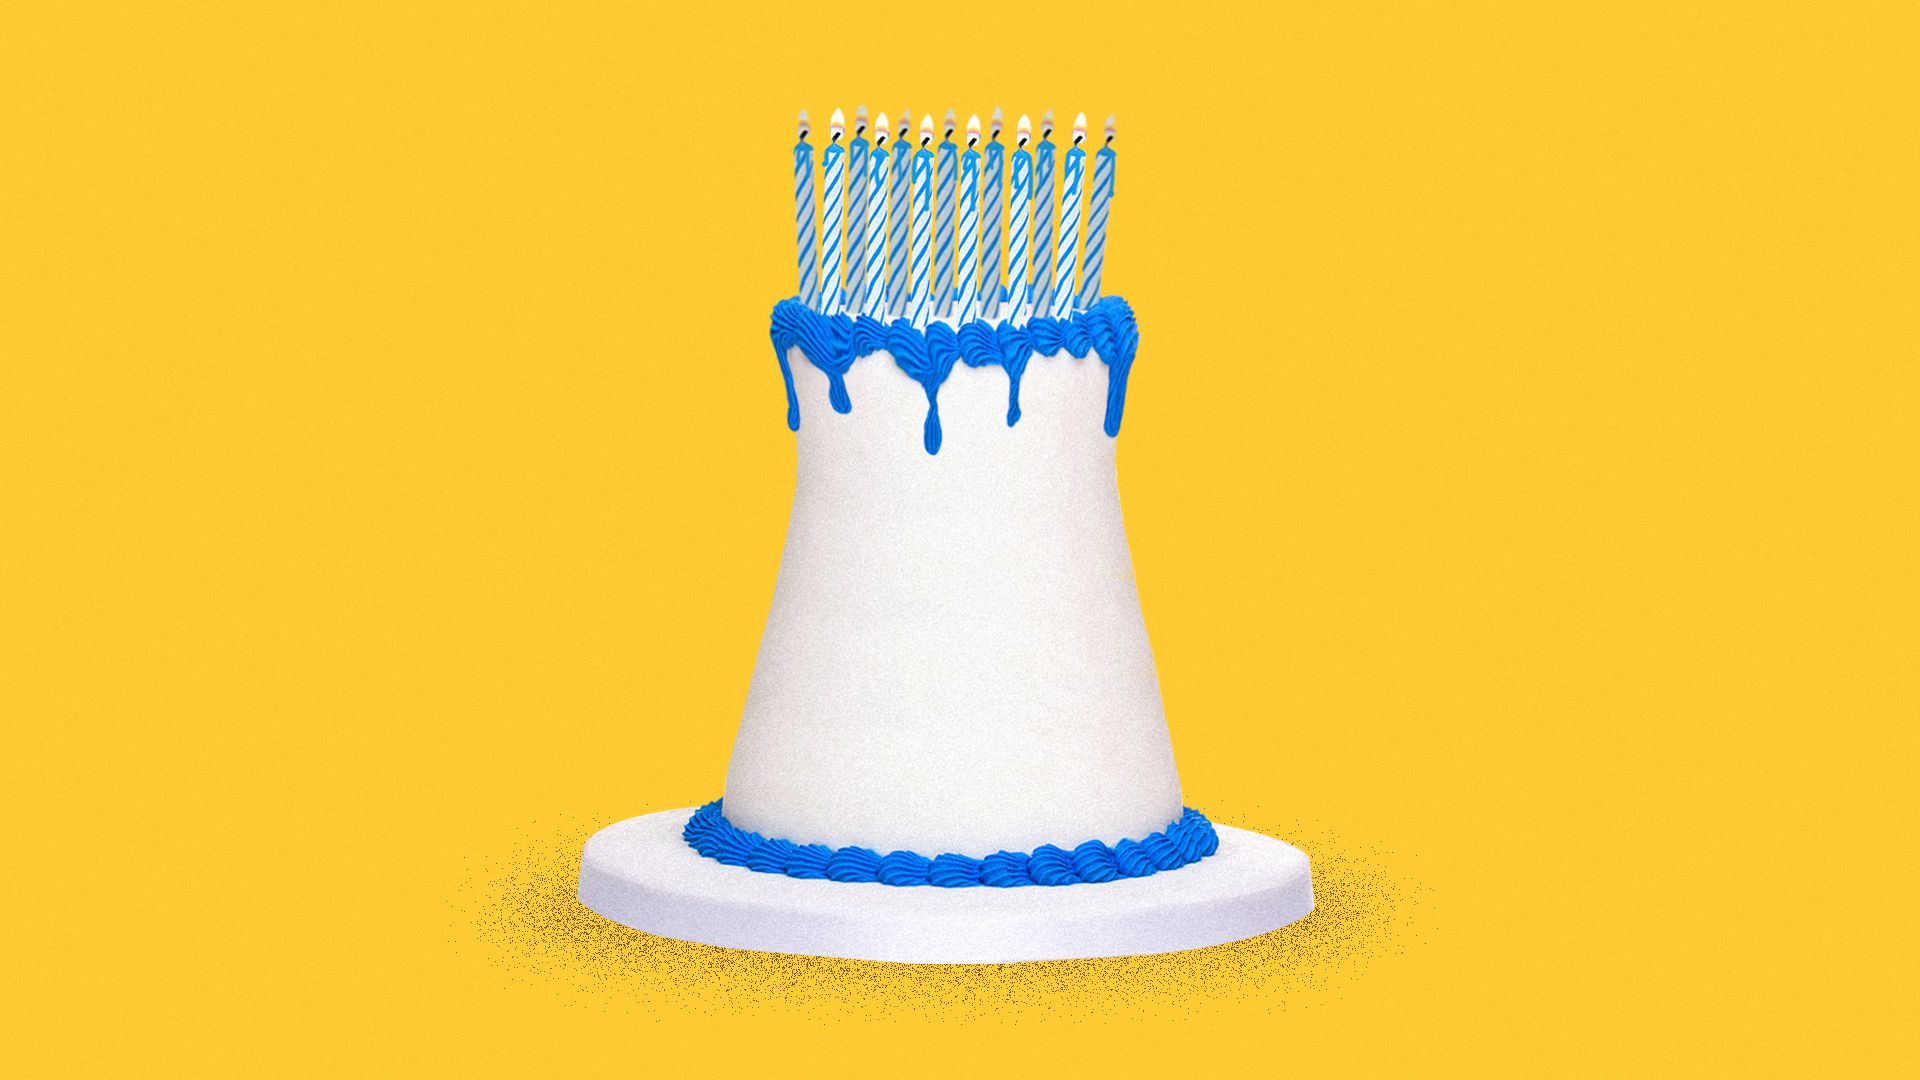 Illustration of a melting birthday cake in the shape of a nuclear tower with too many candles on top.